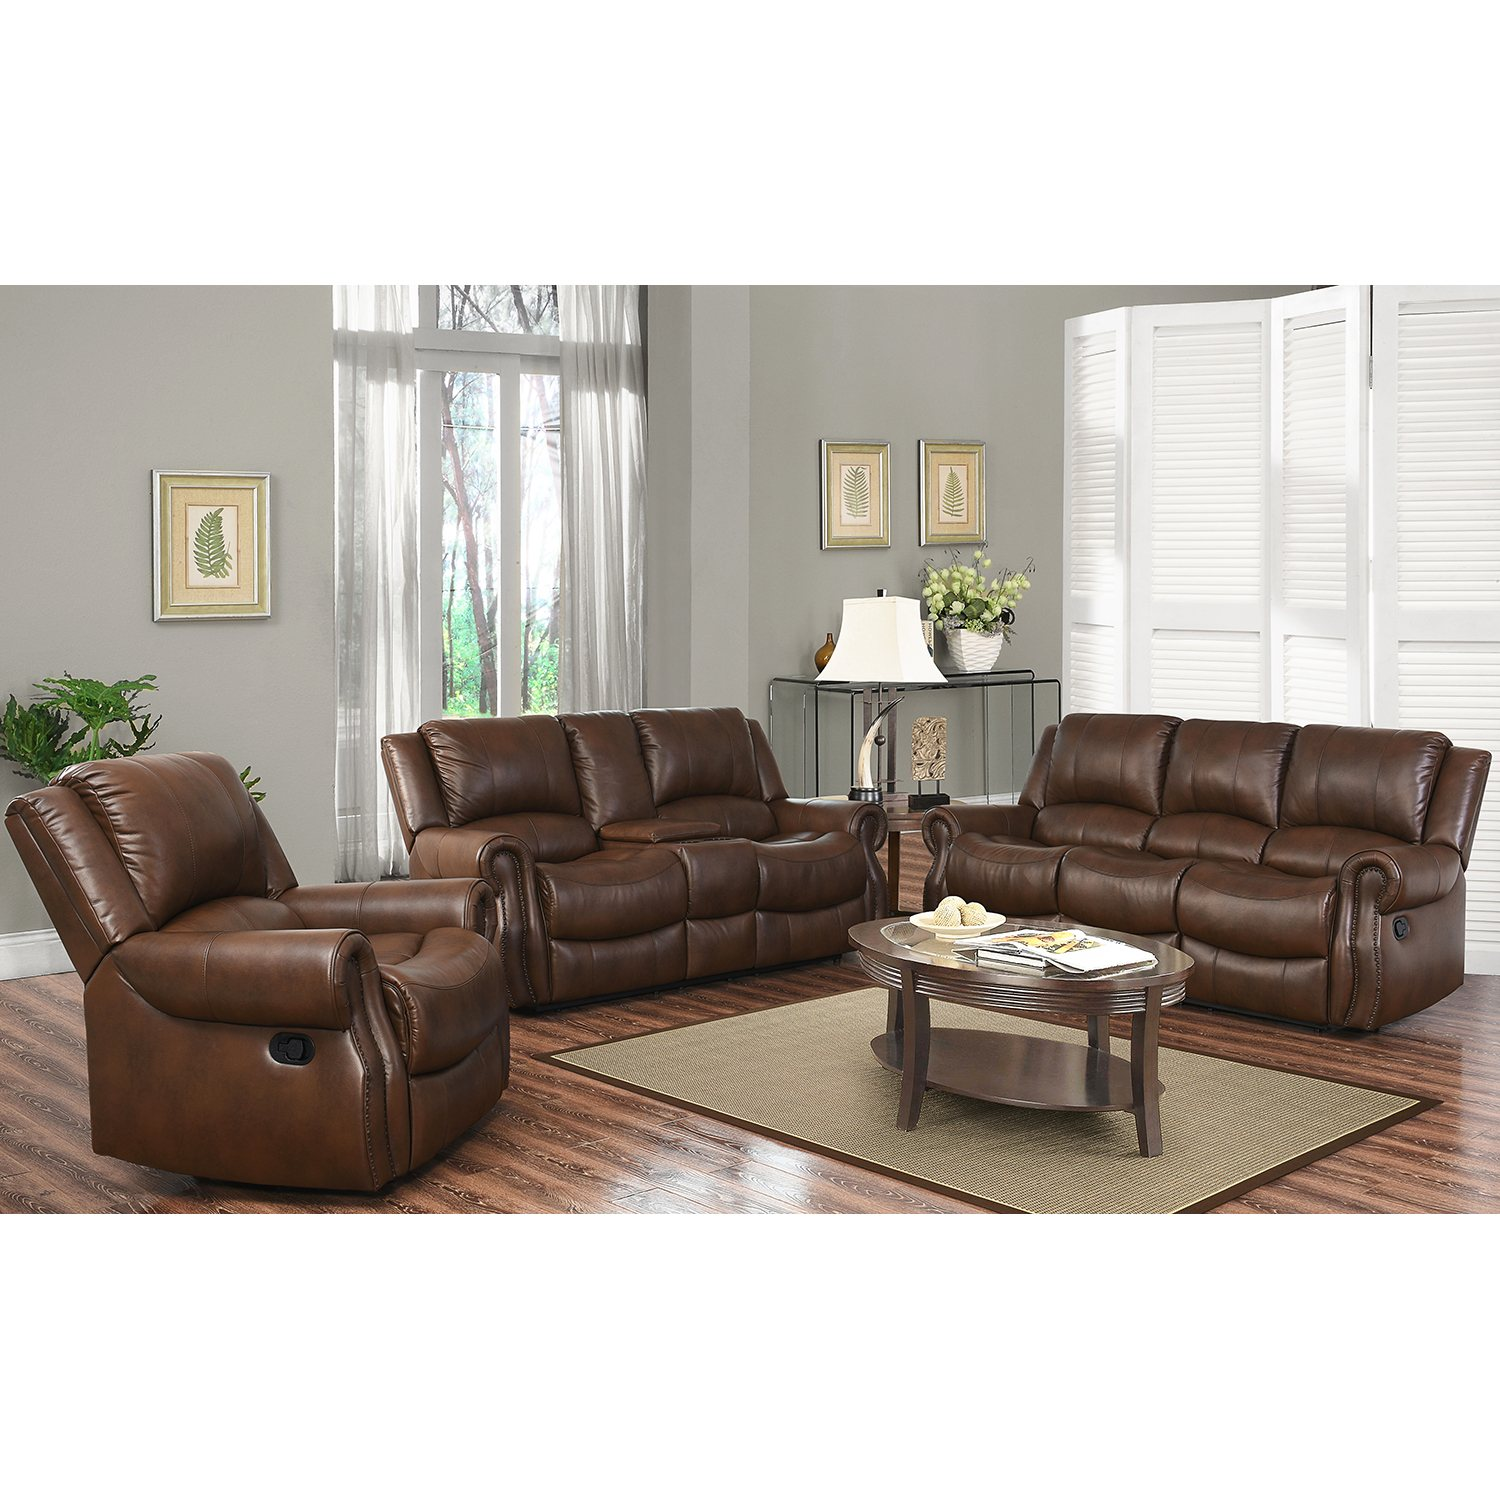 $1999 00 Harvest Reclining Sofa Loveseat and Chair Set dealepic